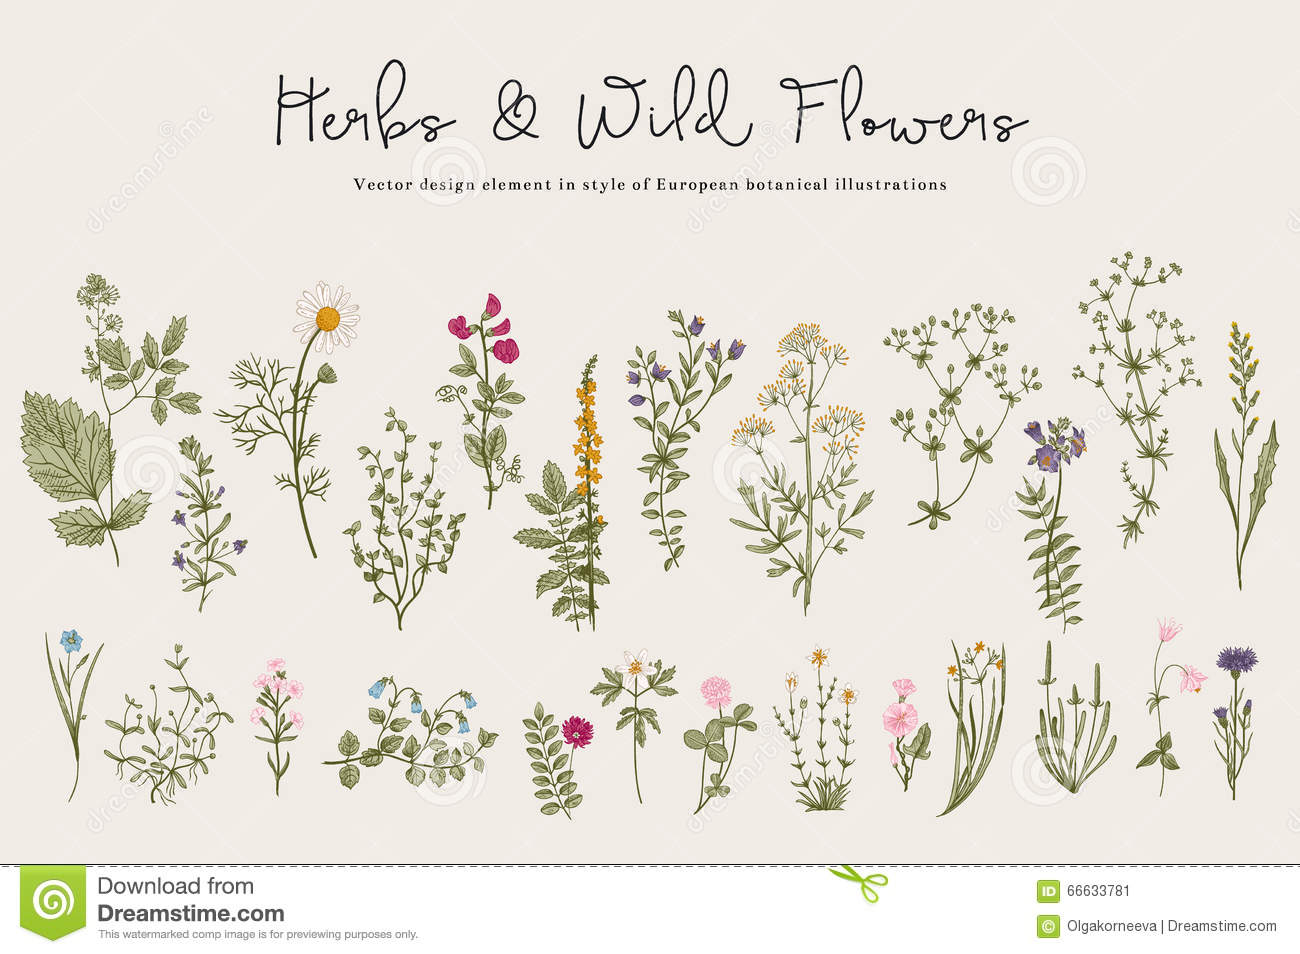 Herbs and Wild Flowers.